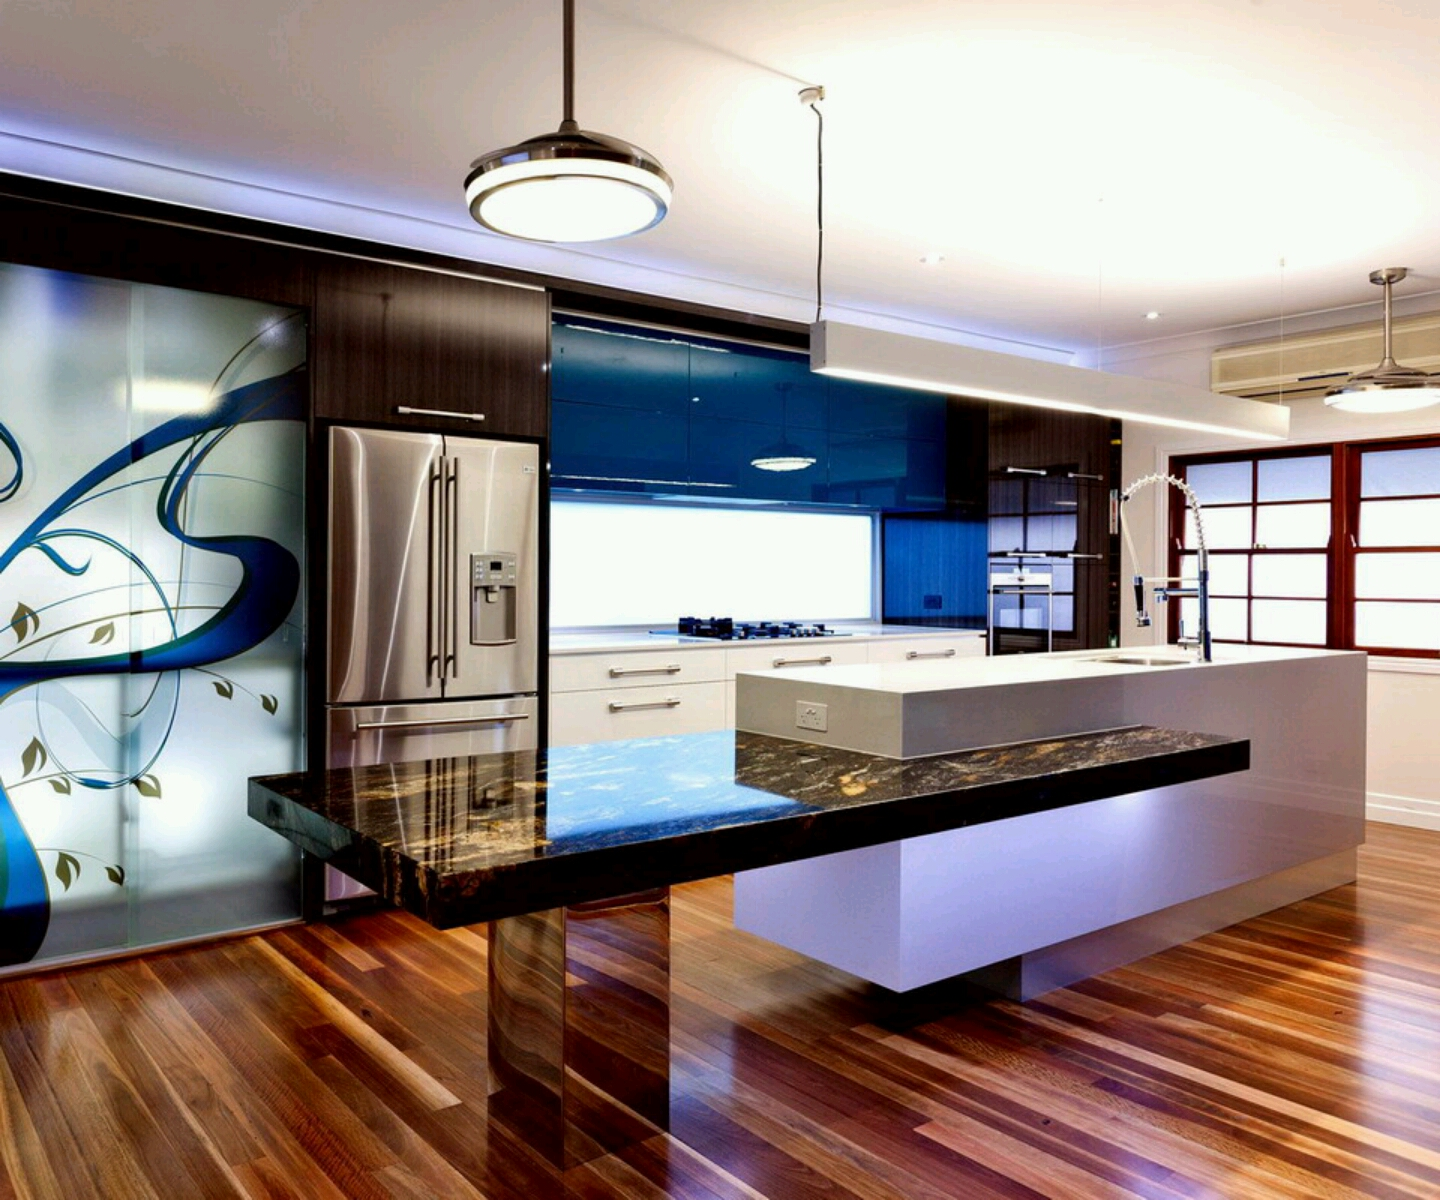 Ultra modern kitchen designs ideas new home designs for Kitchen in modern house